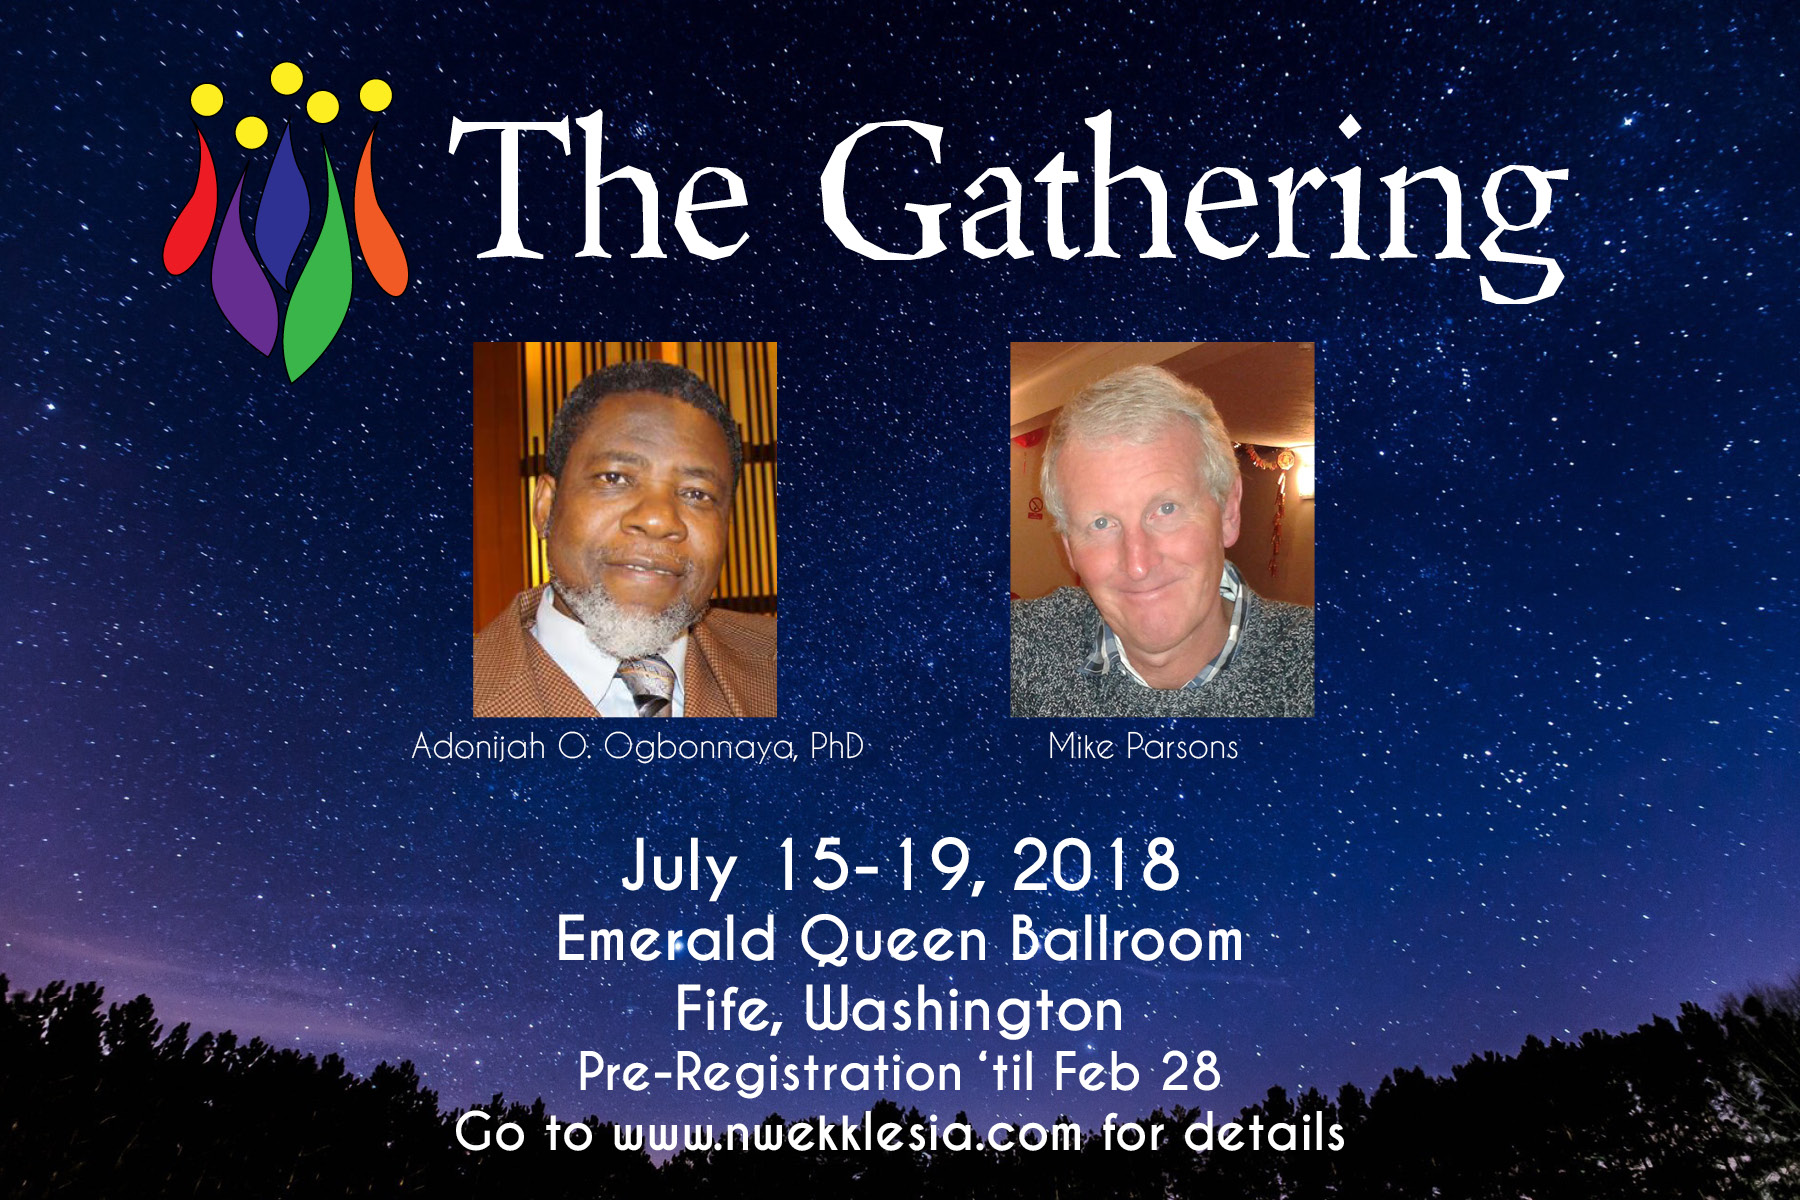 Register now for The Gathering!